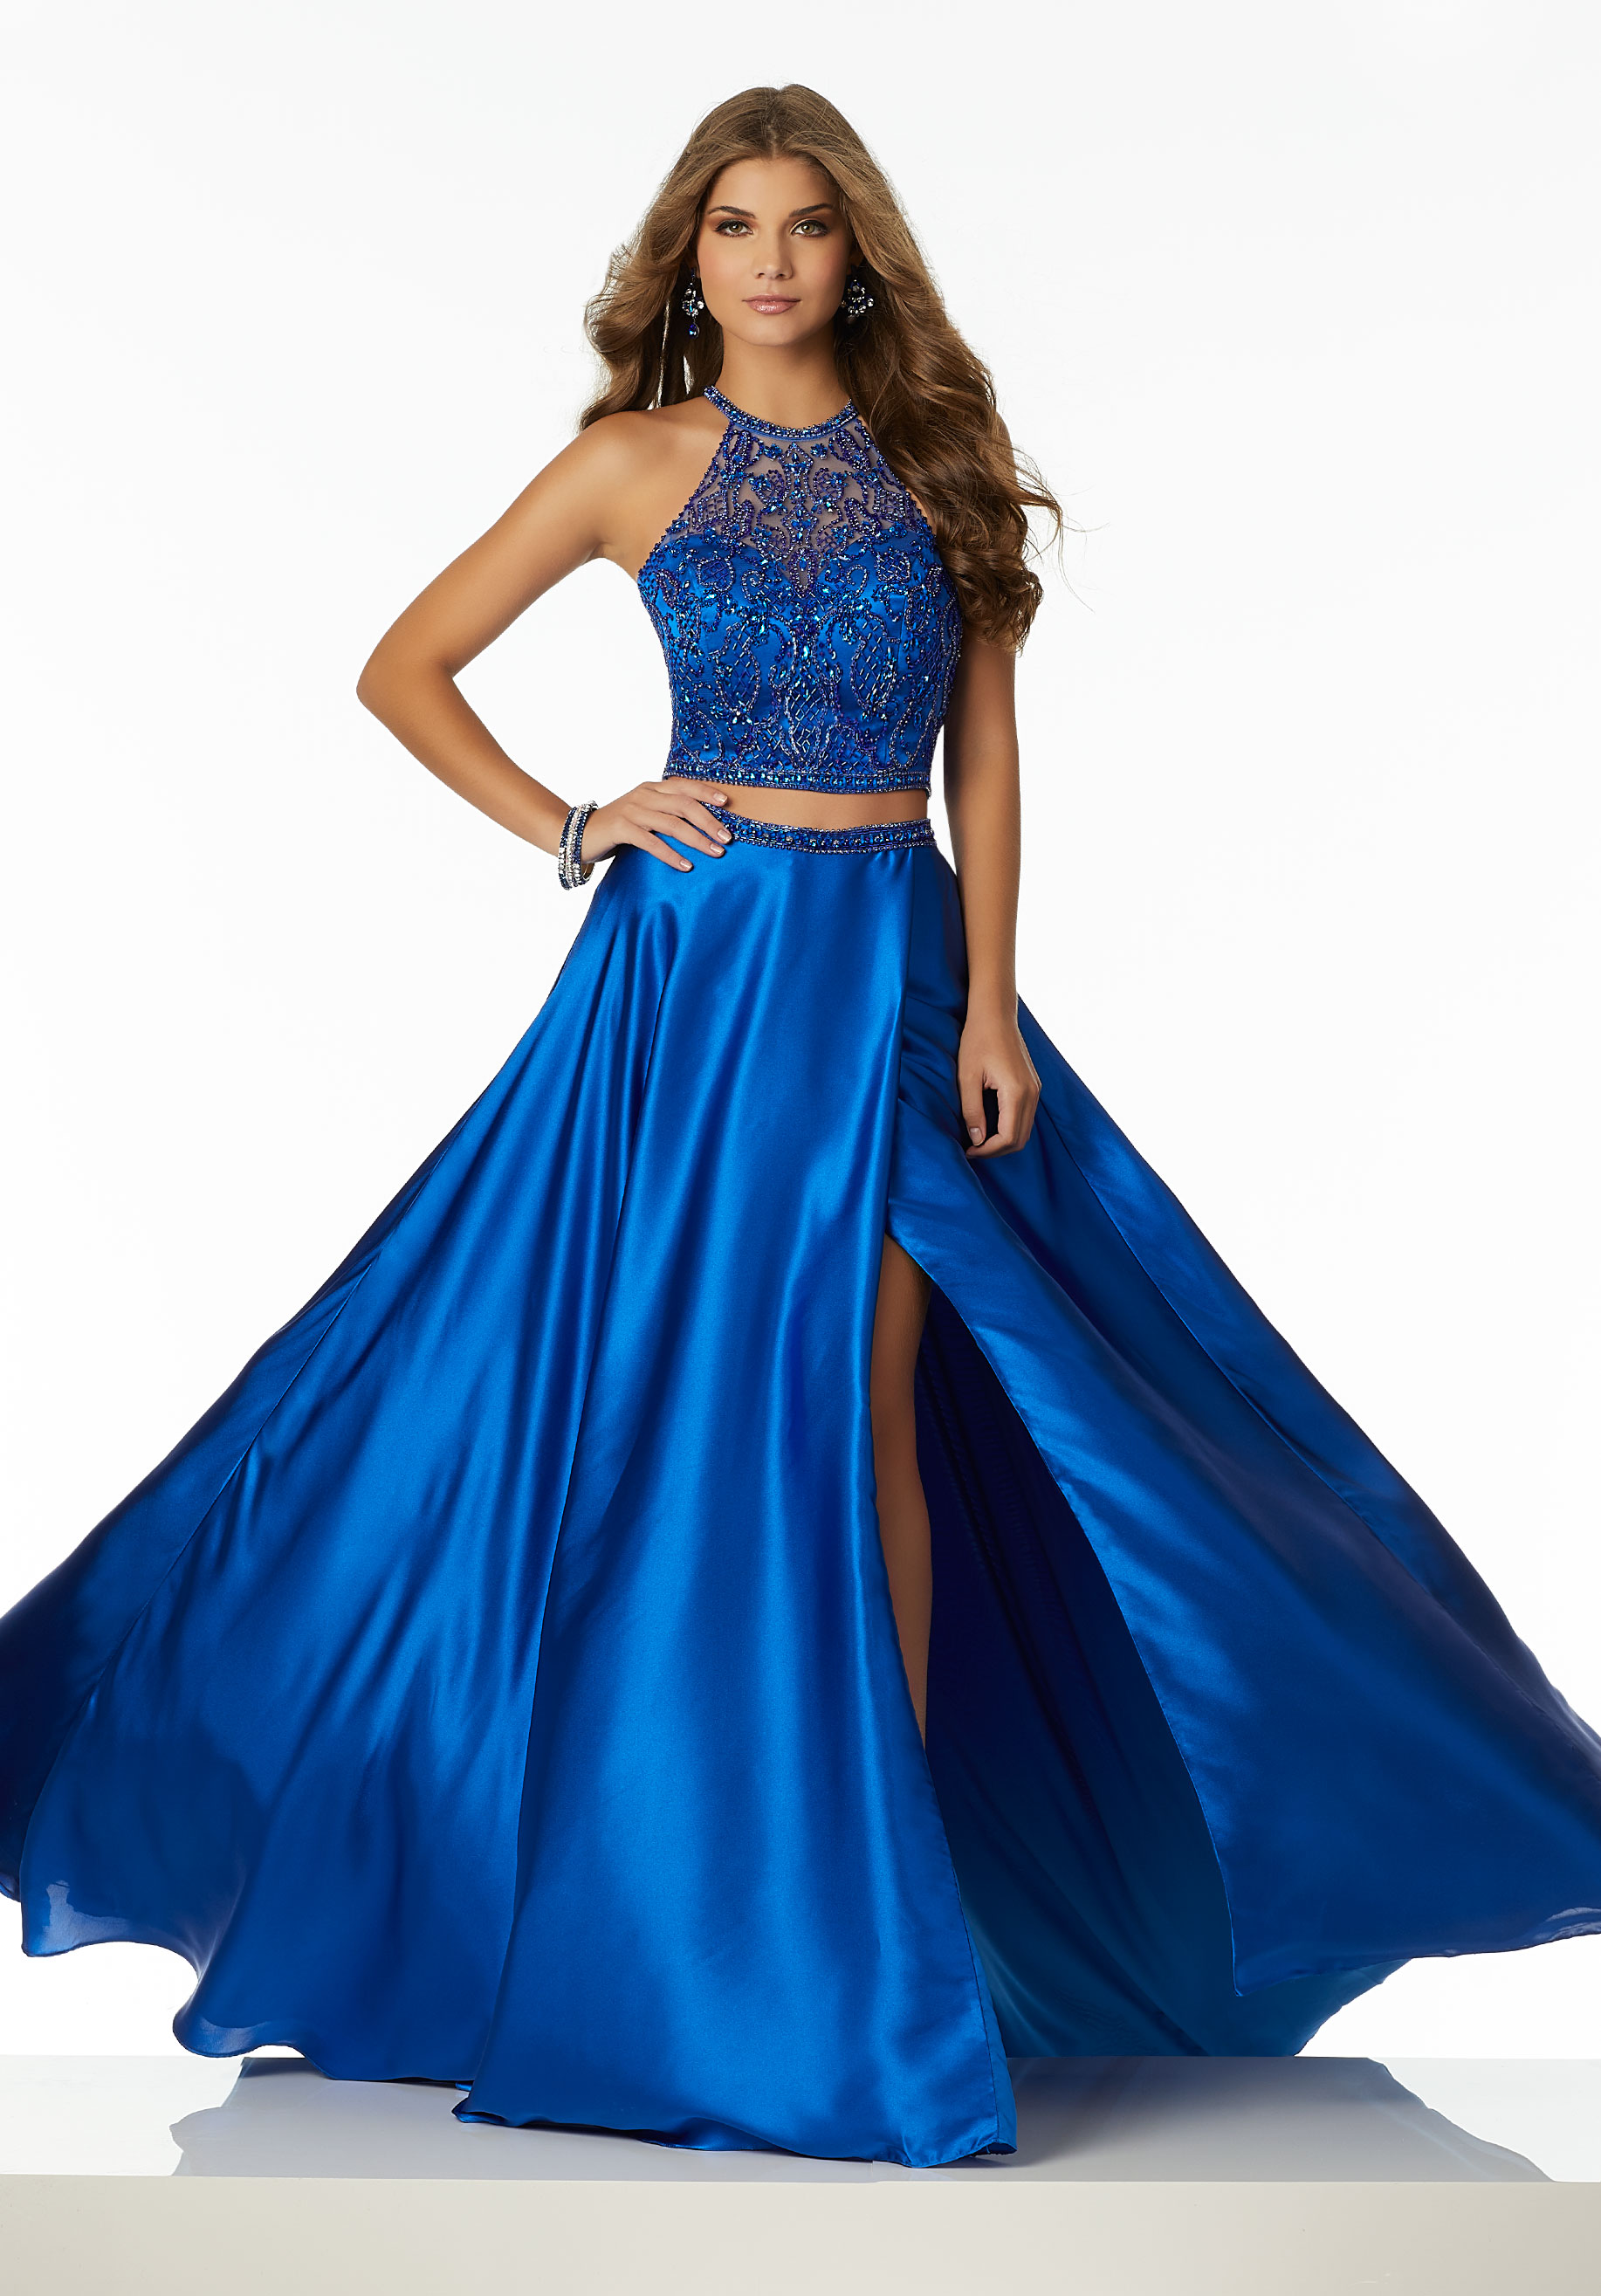 Morilee - The Morilee Prom Dress Collection is fabulously fun and forward for the contemporary, confident woman. Swarovski crystals, sparkling fabrics and embroideries, lace, tulle, chiffon and jersey with modern detailing encompass the spectrum of this uniquely designed Collection.